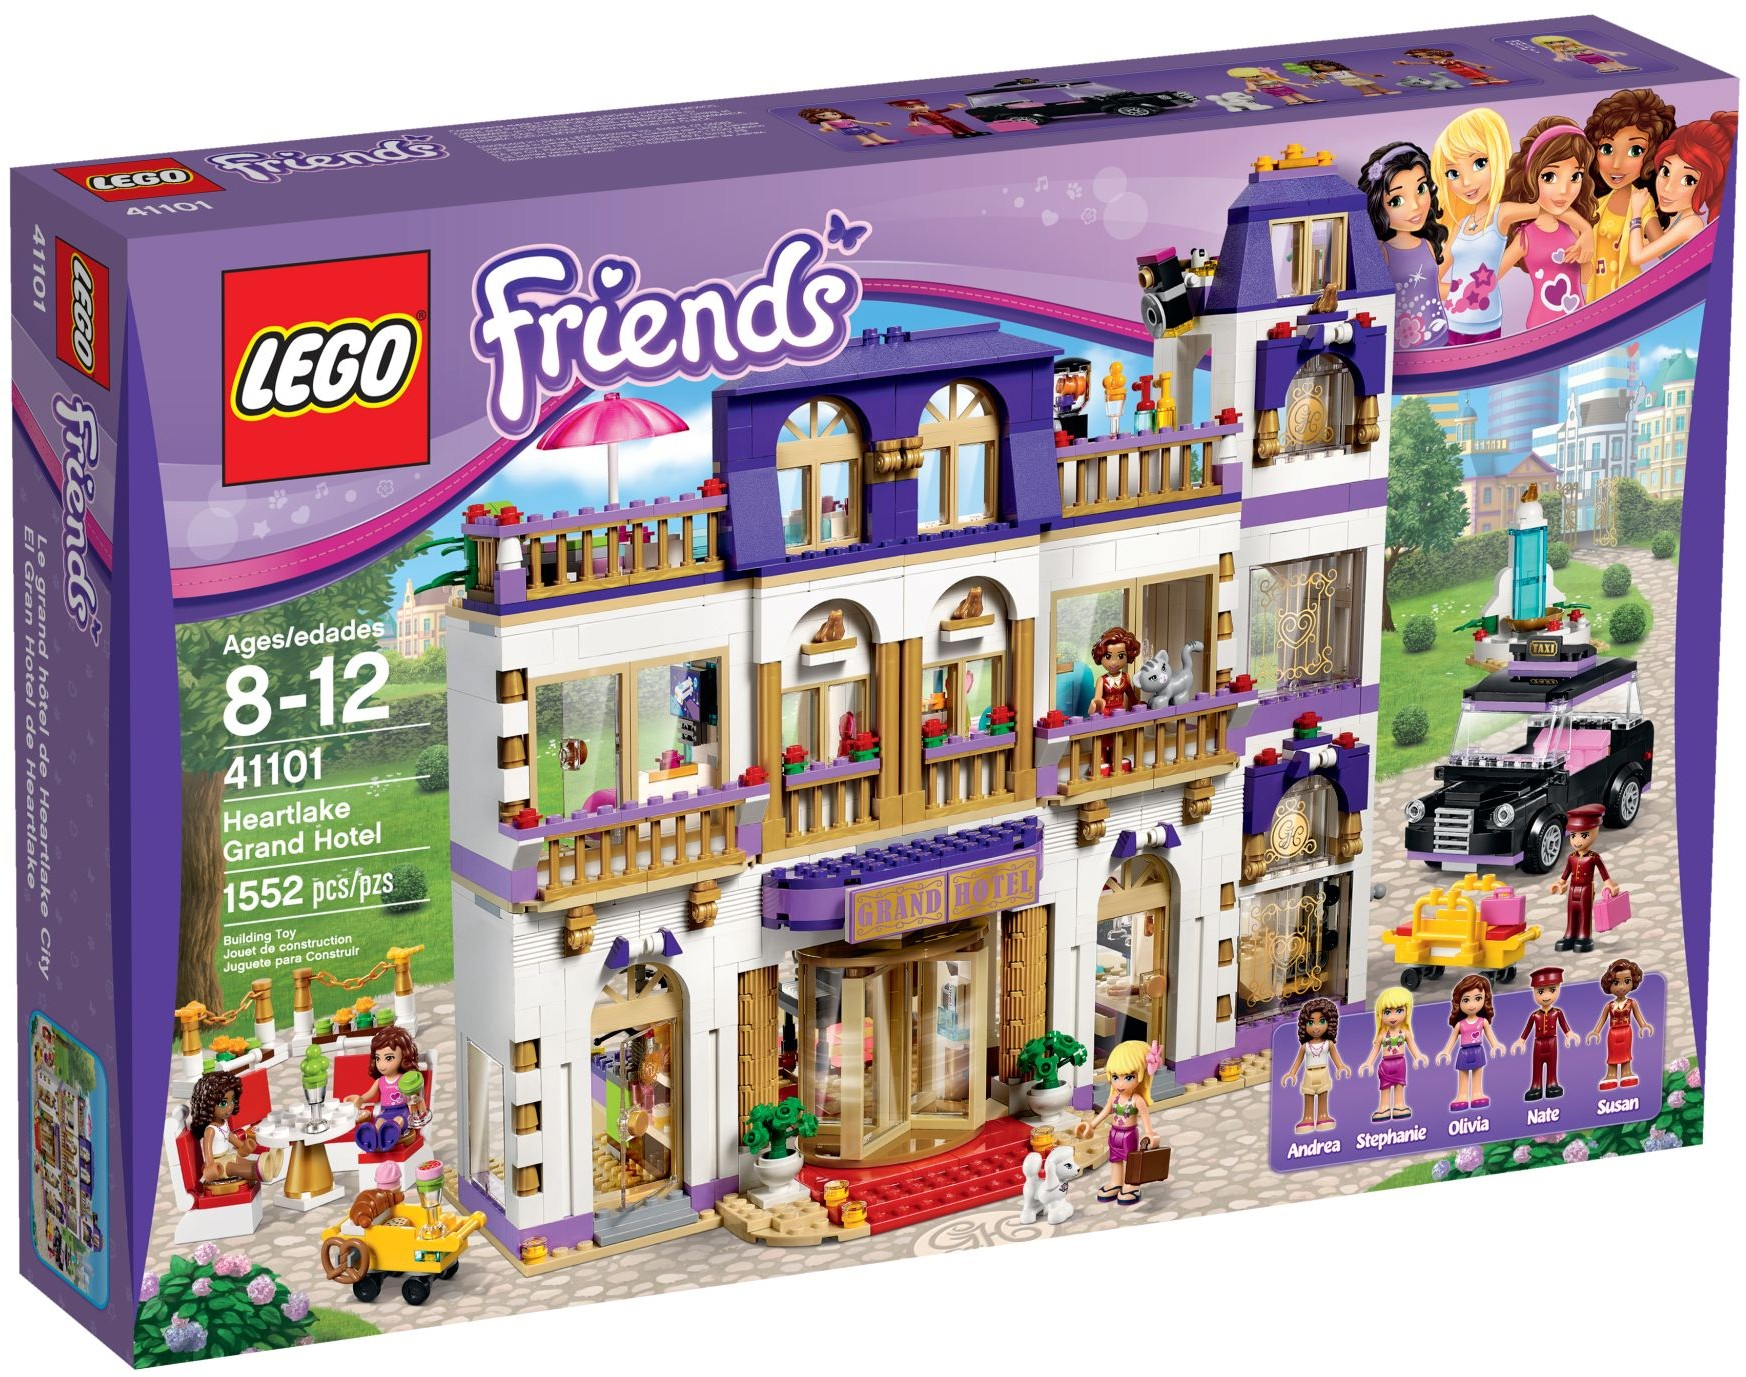 LEGO 41101 - Friends - Heartlake Grand Hotel